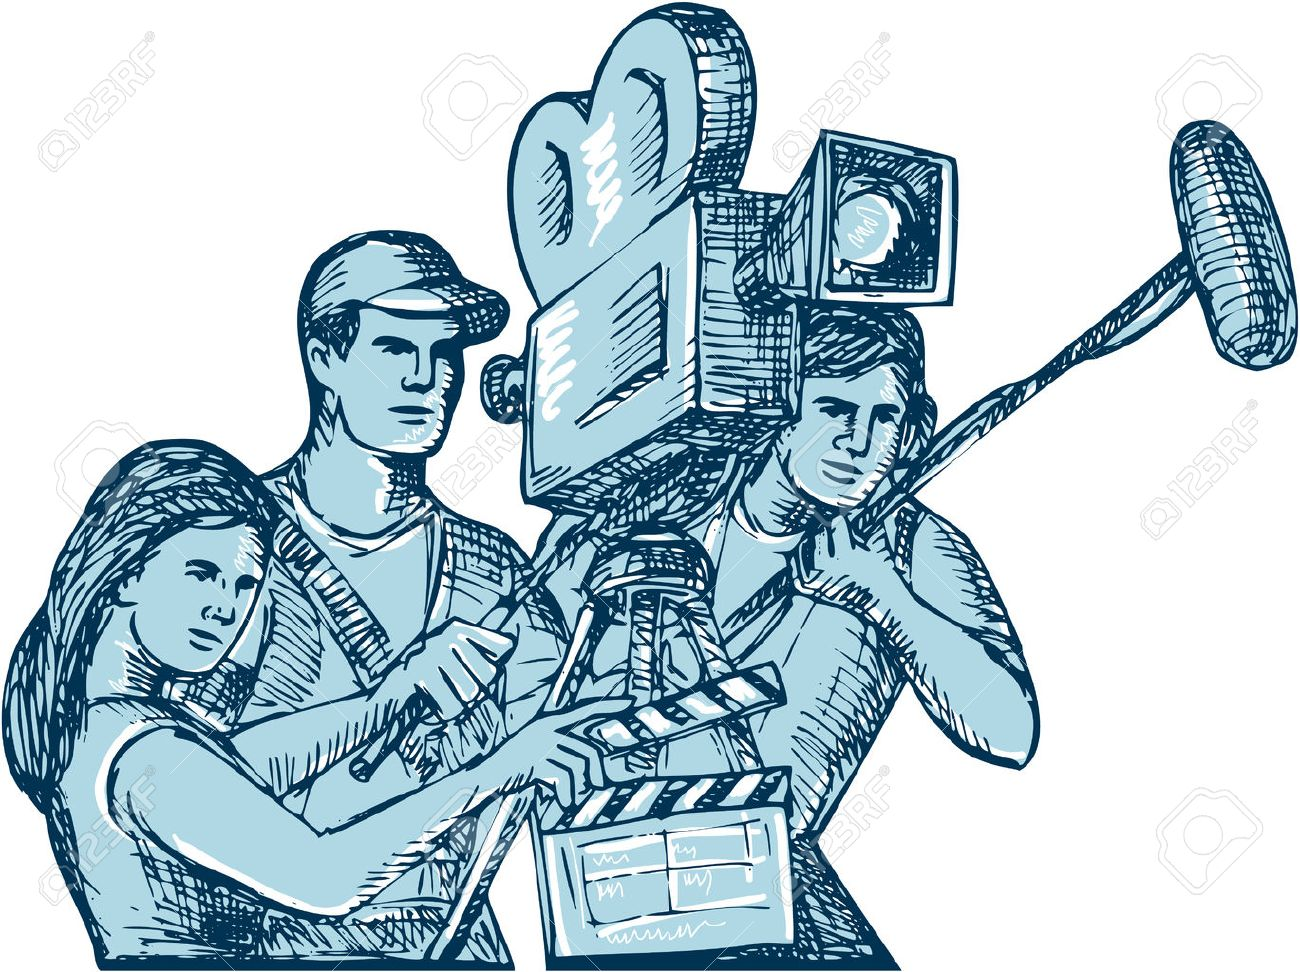 Drawing style illustration of a film crew cameraman soundman with clapperboard, microphone, video film camera filming set on isolated white background. Stock Vector - 40593632